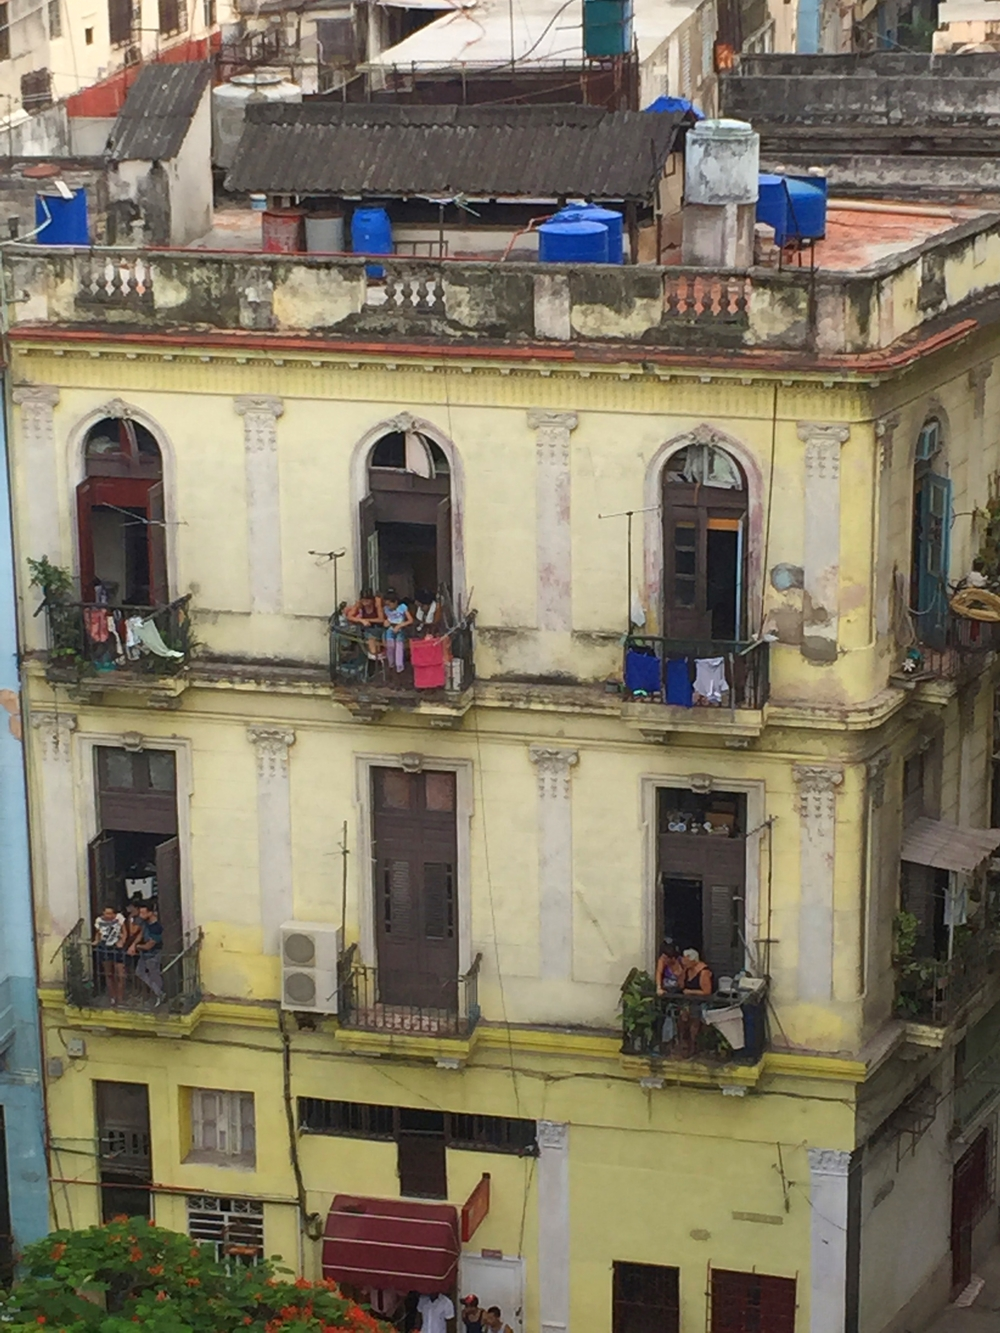 Apartment building in Havana.